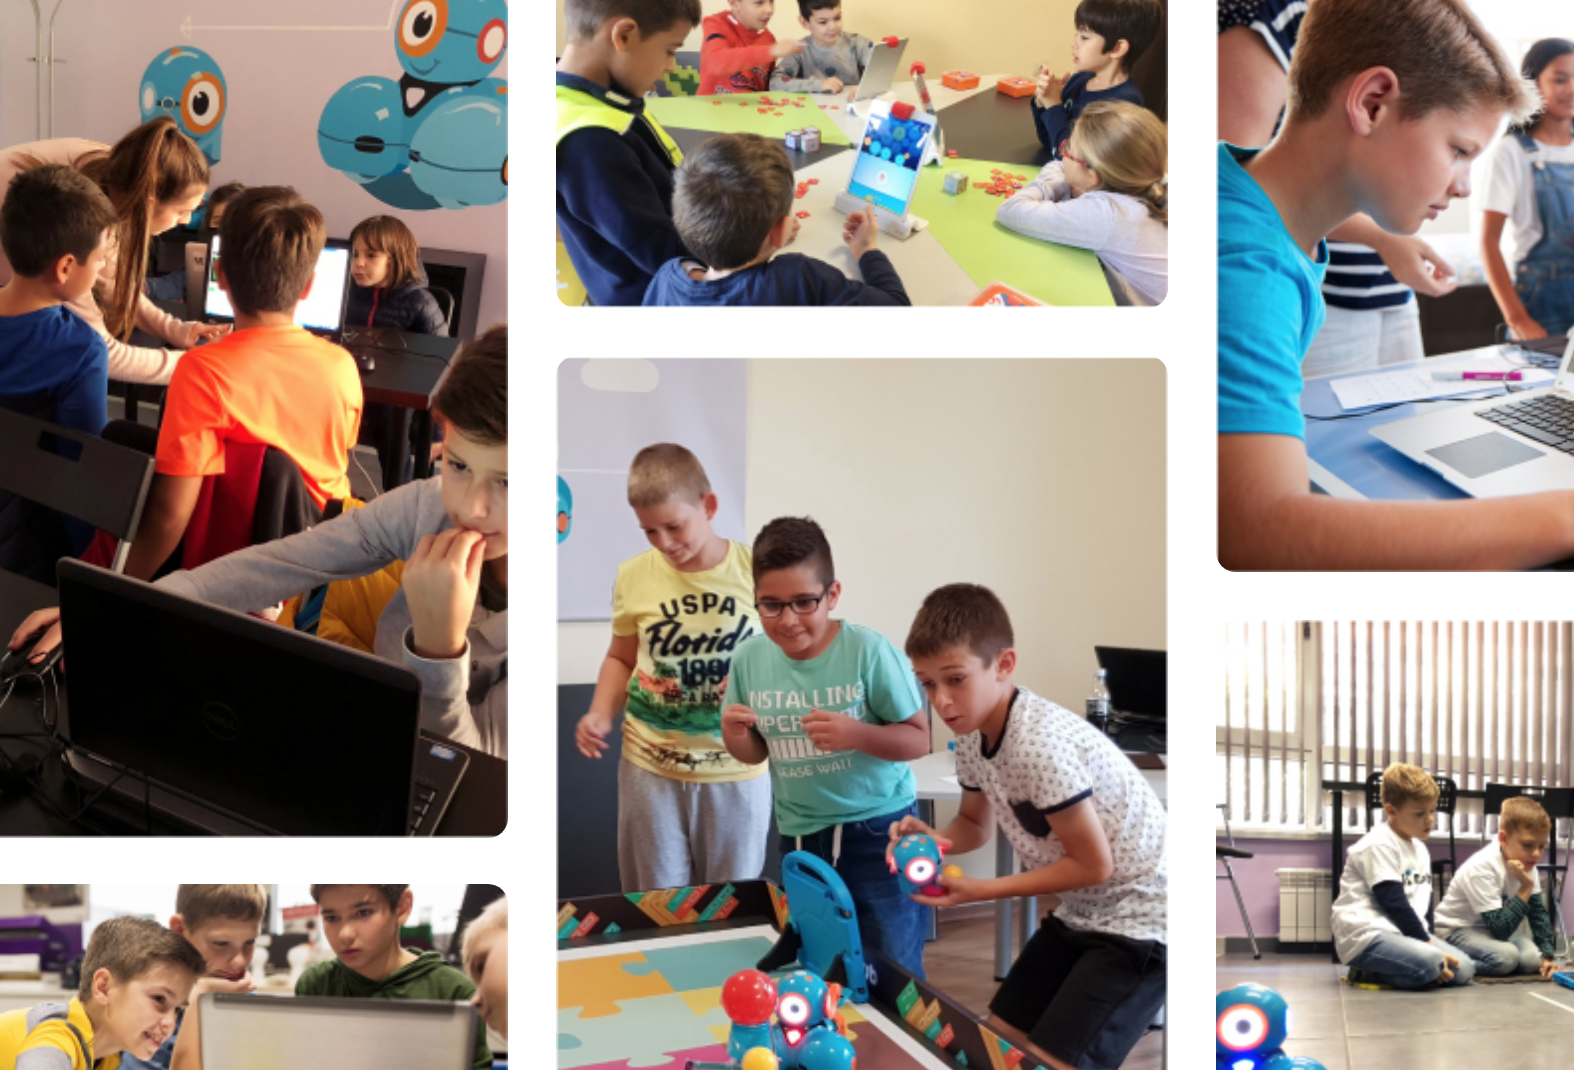 Coding Classes for Kids with MindHub | Ages 6-18 | Taught Over 5K+ Students 2